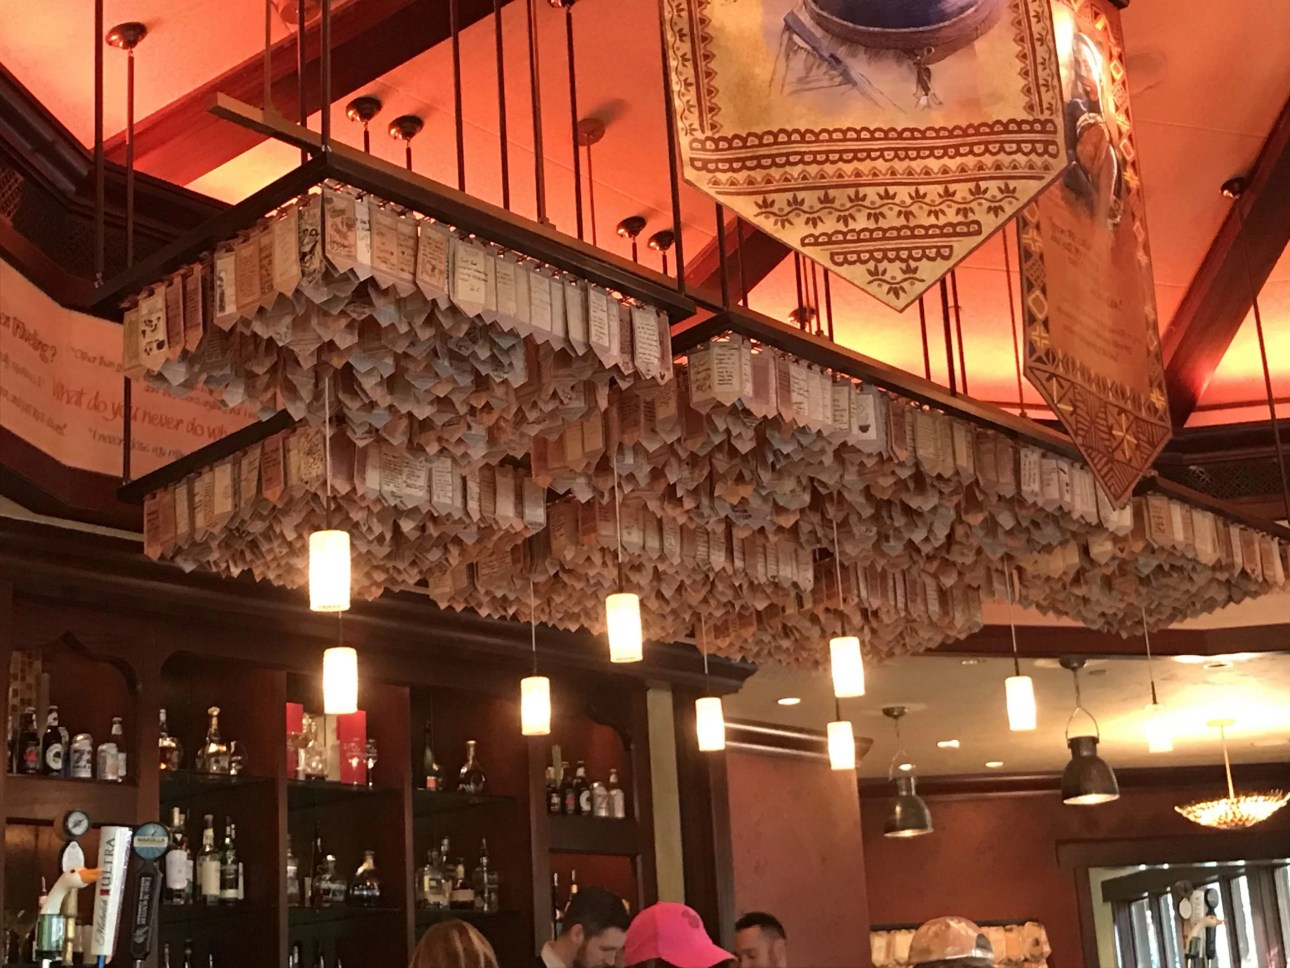 Nomad Lounge Mini-Banners over Bar